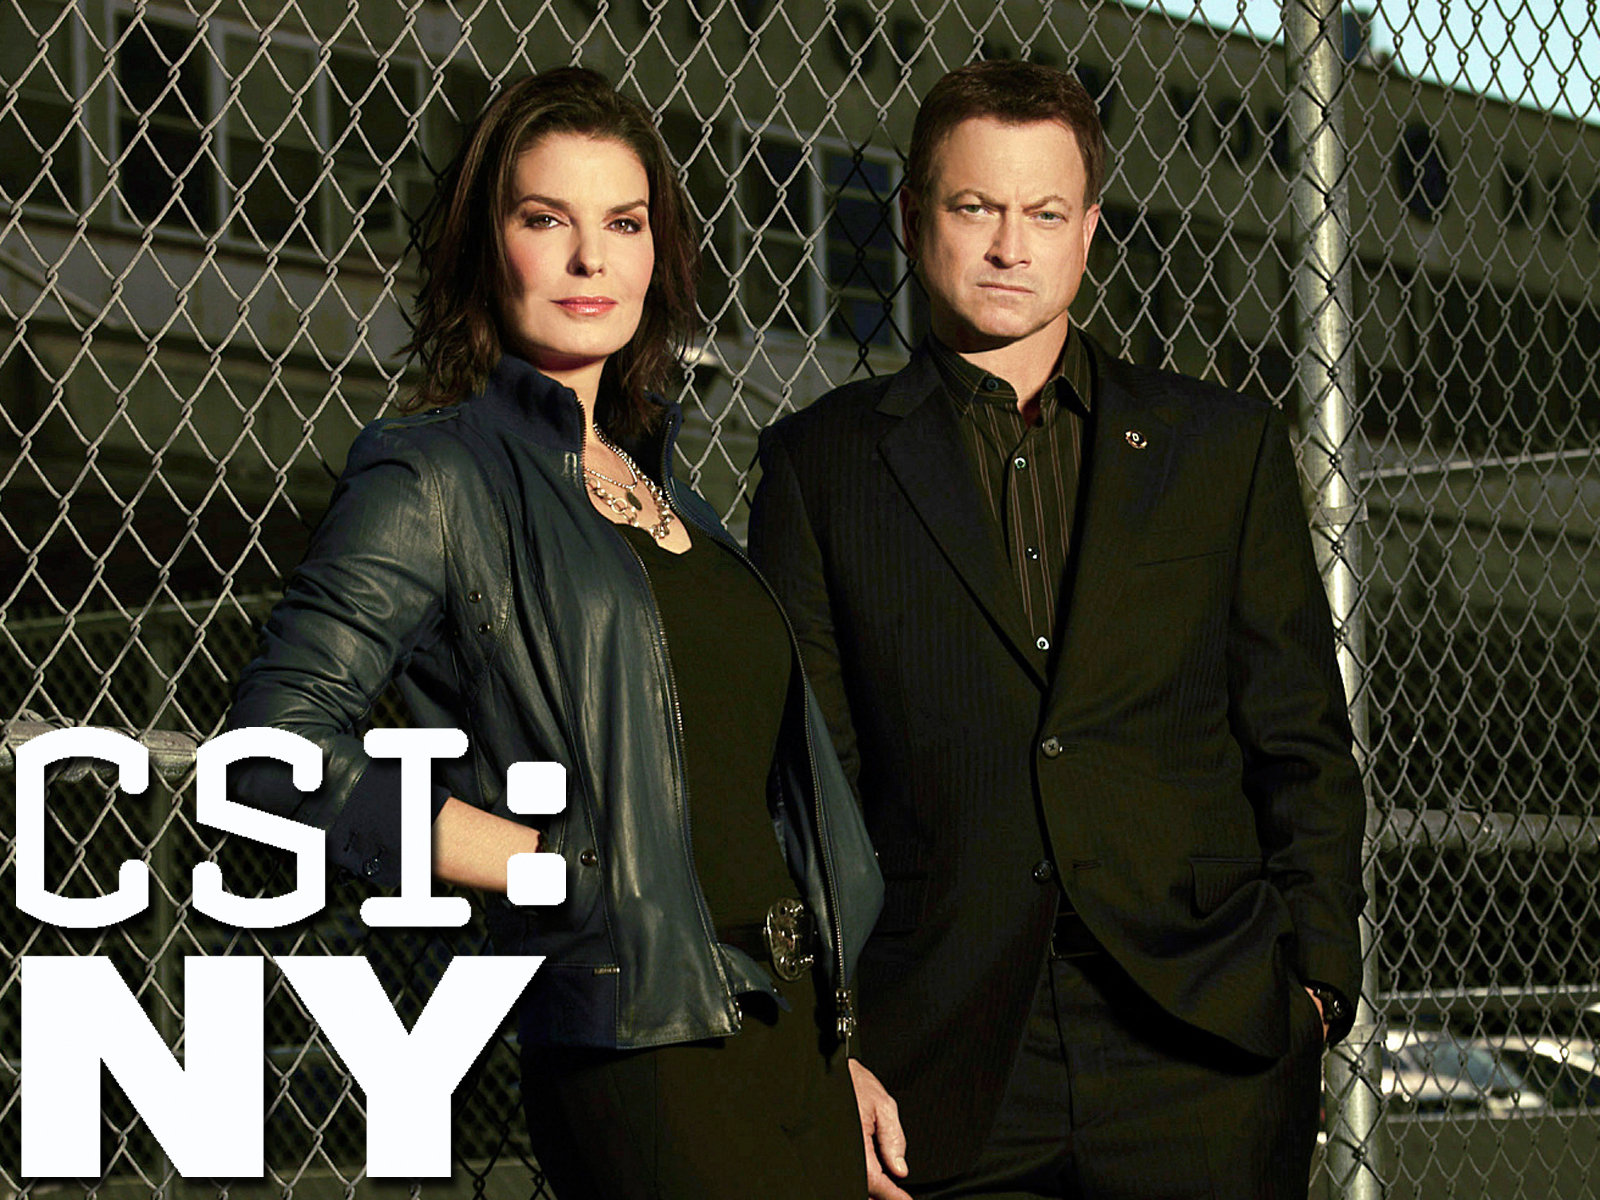 csi ny season 6 torrent